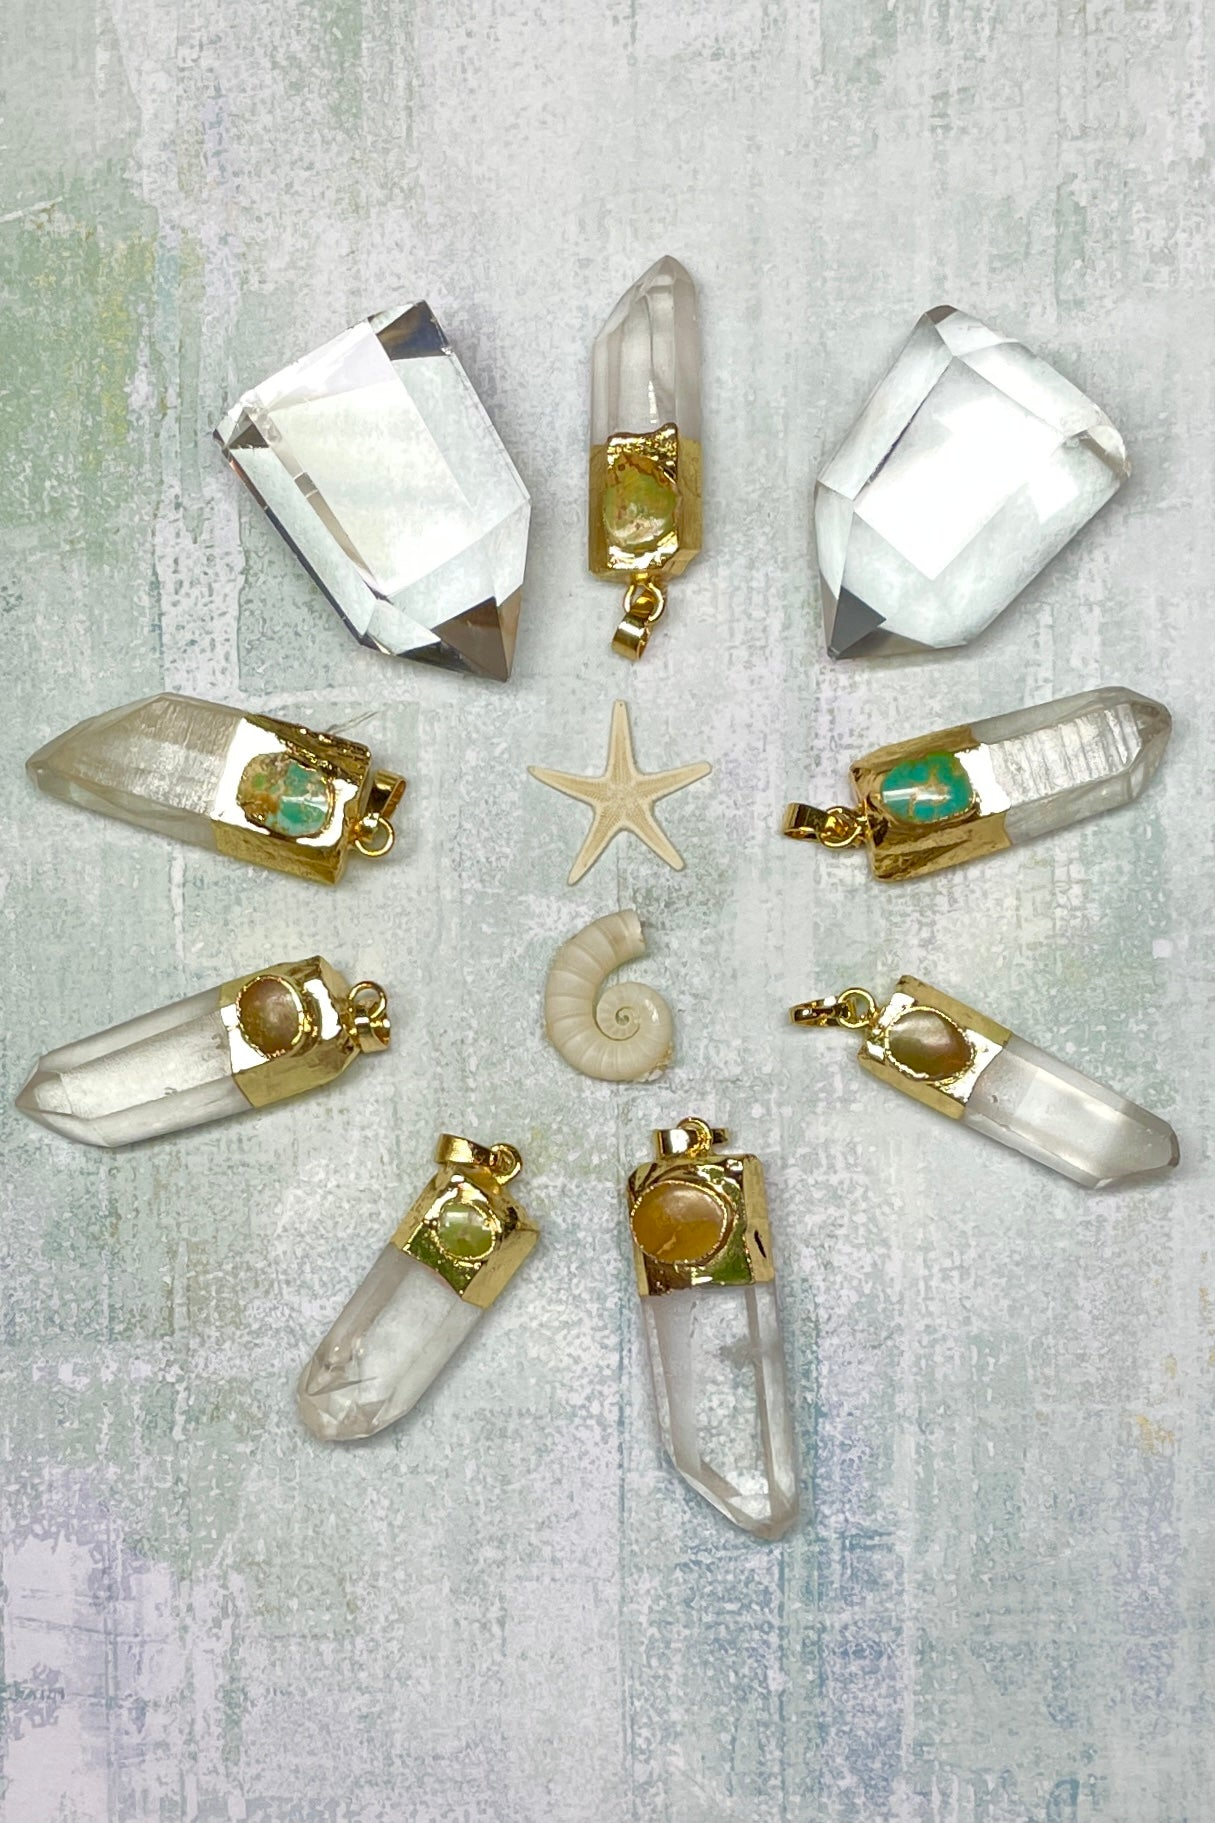 A crystal point that has a hand cut, with turquoise stone at the top, encased in gold tone.